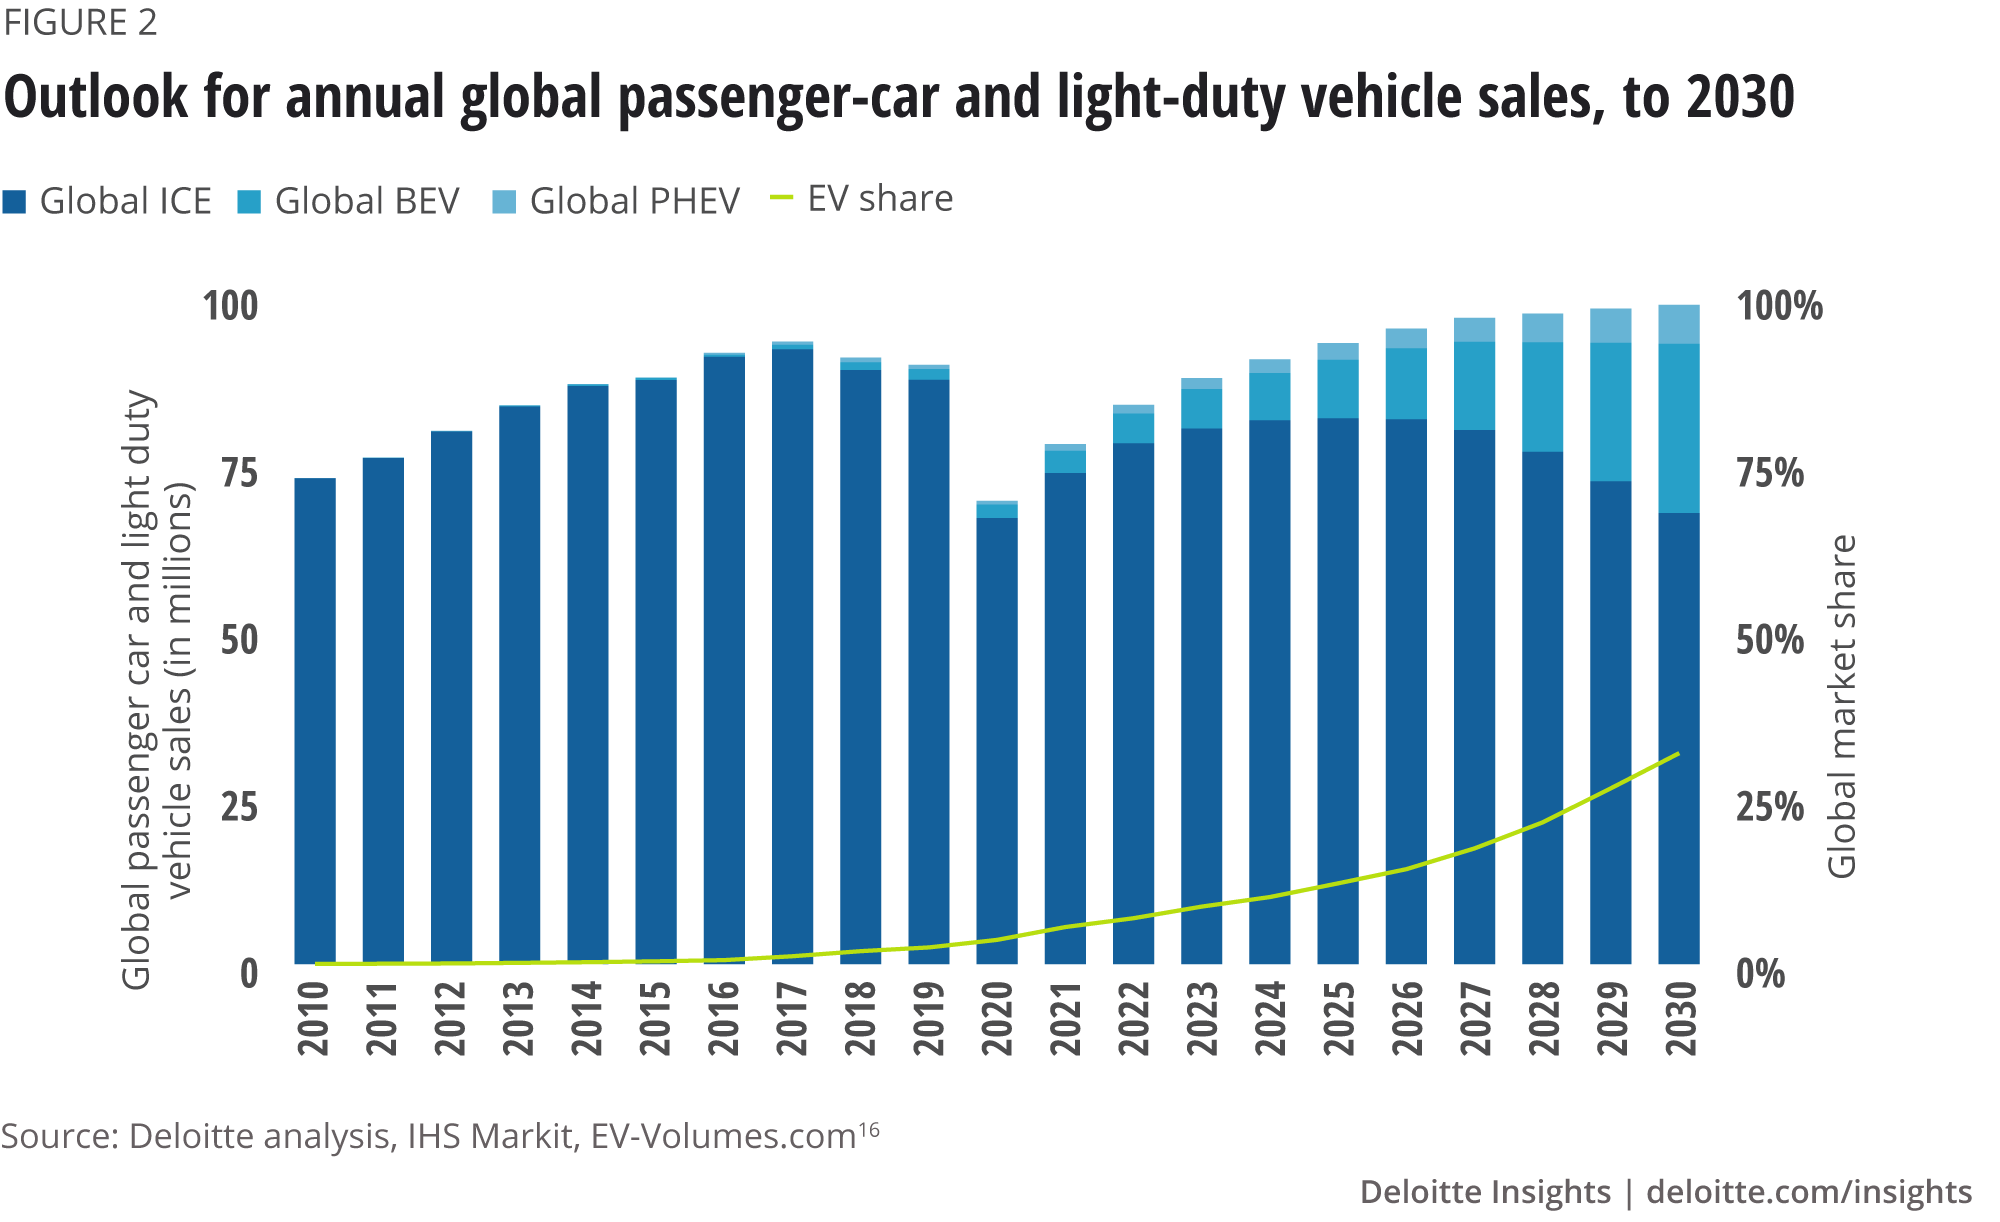 Outlook for annual global passenger-car and light-duty vehicle sales, to 2030